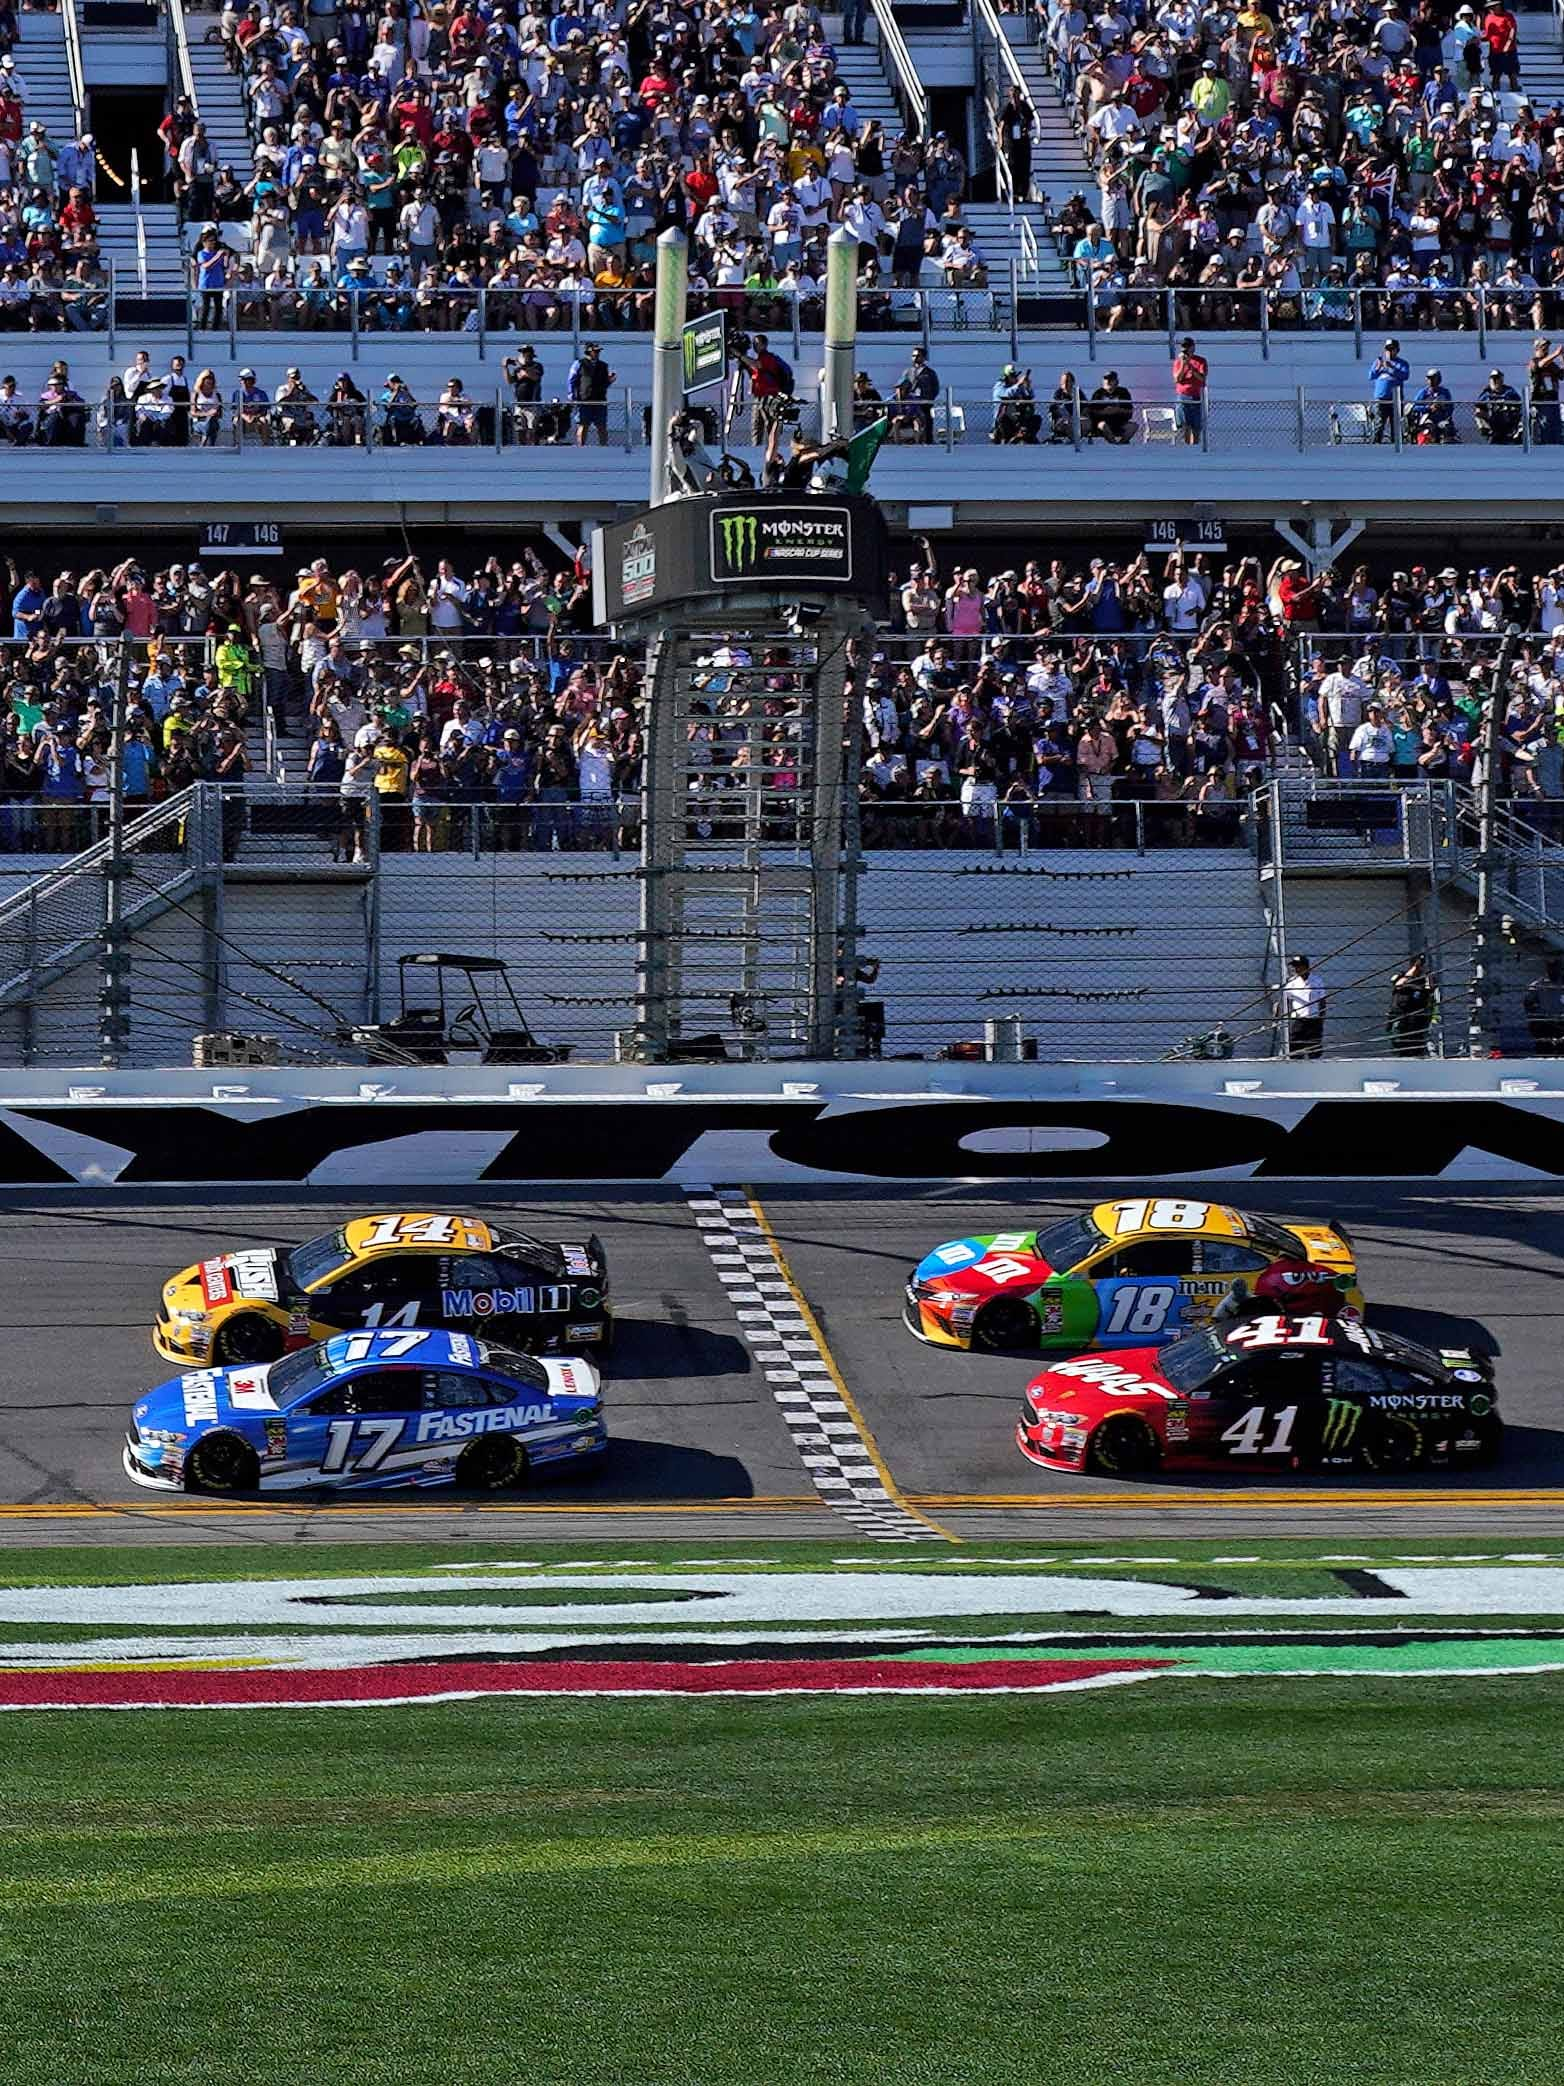 The 2019 Monster Energy NASCAR Cup Series schedule kicks off with Daytona 500 qualifying on Feb. 10, with the race one week later on Feb. 17.